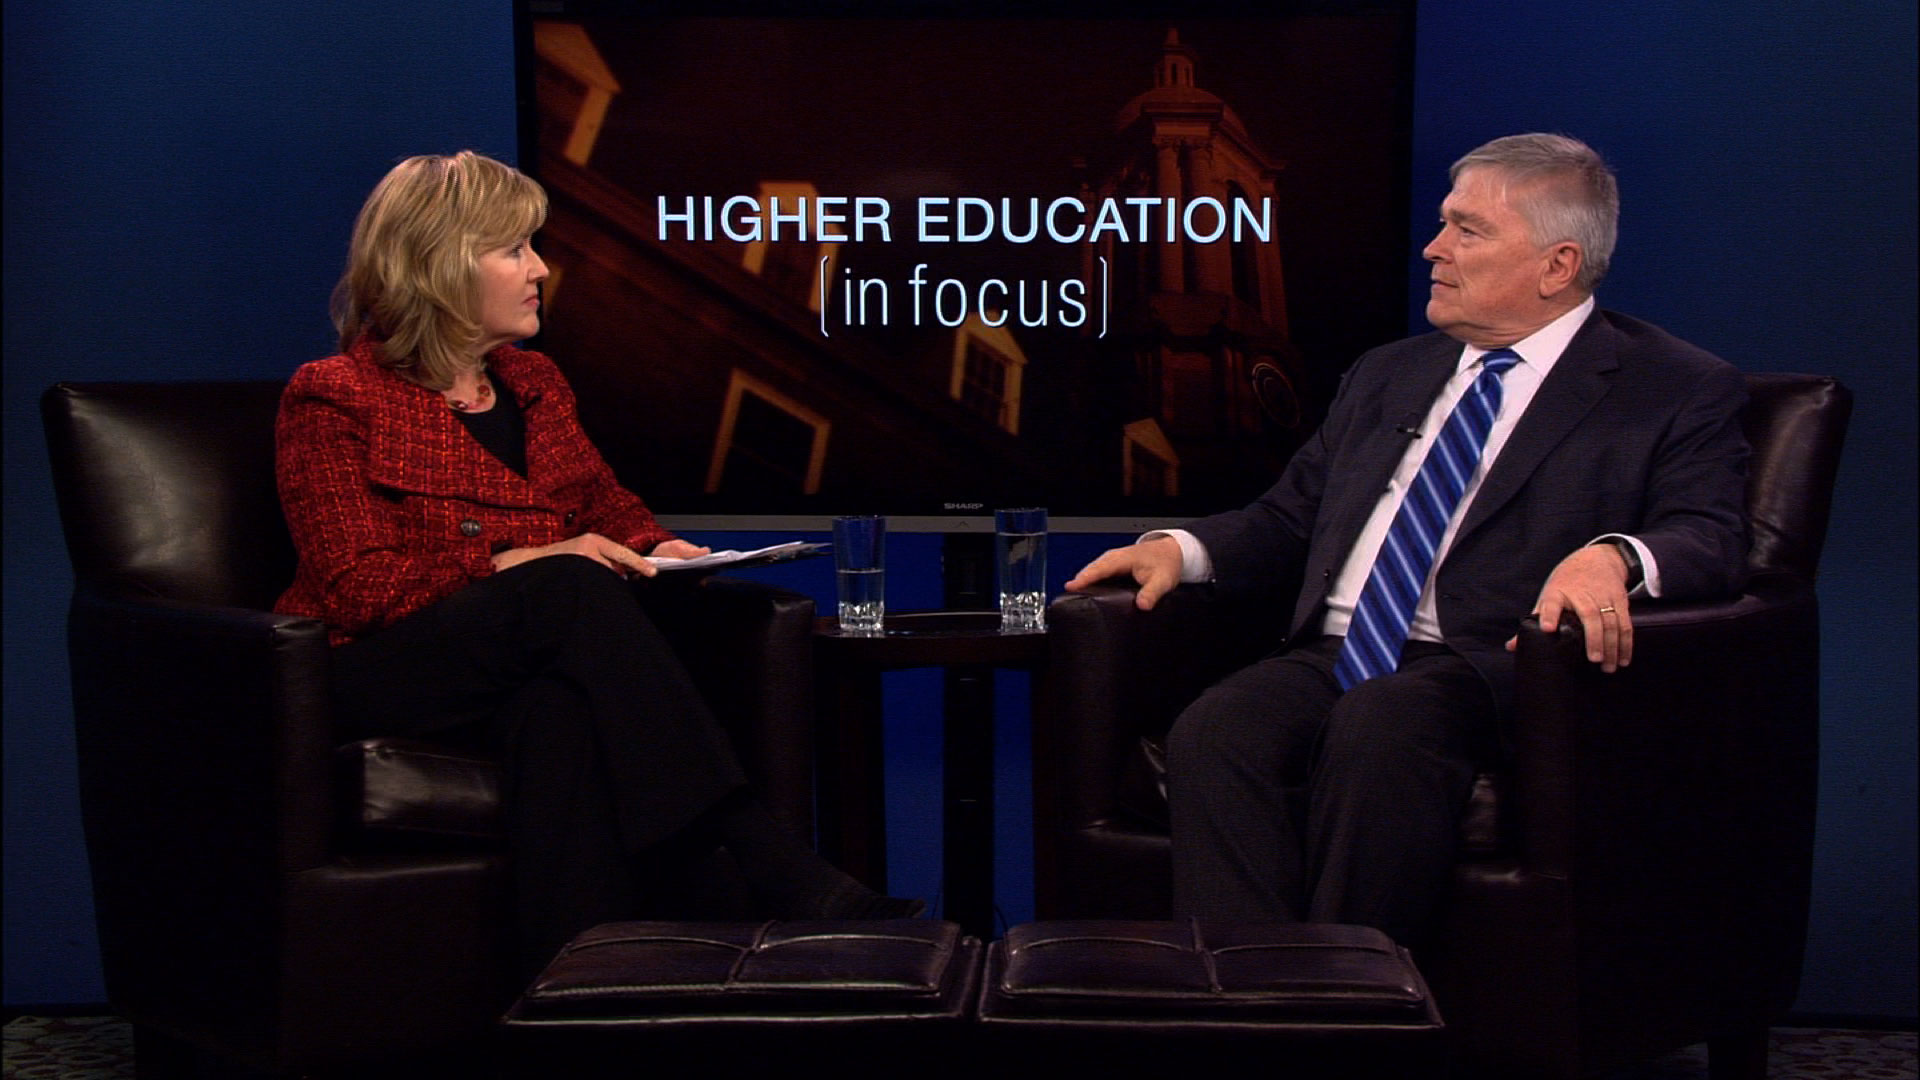 Patty Satalia and Eric Barron on the set of Higher Education in Focus